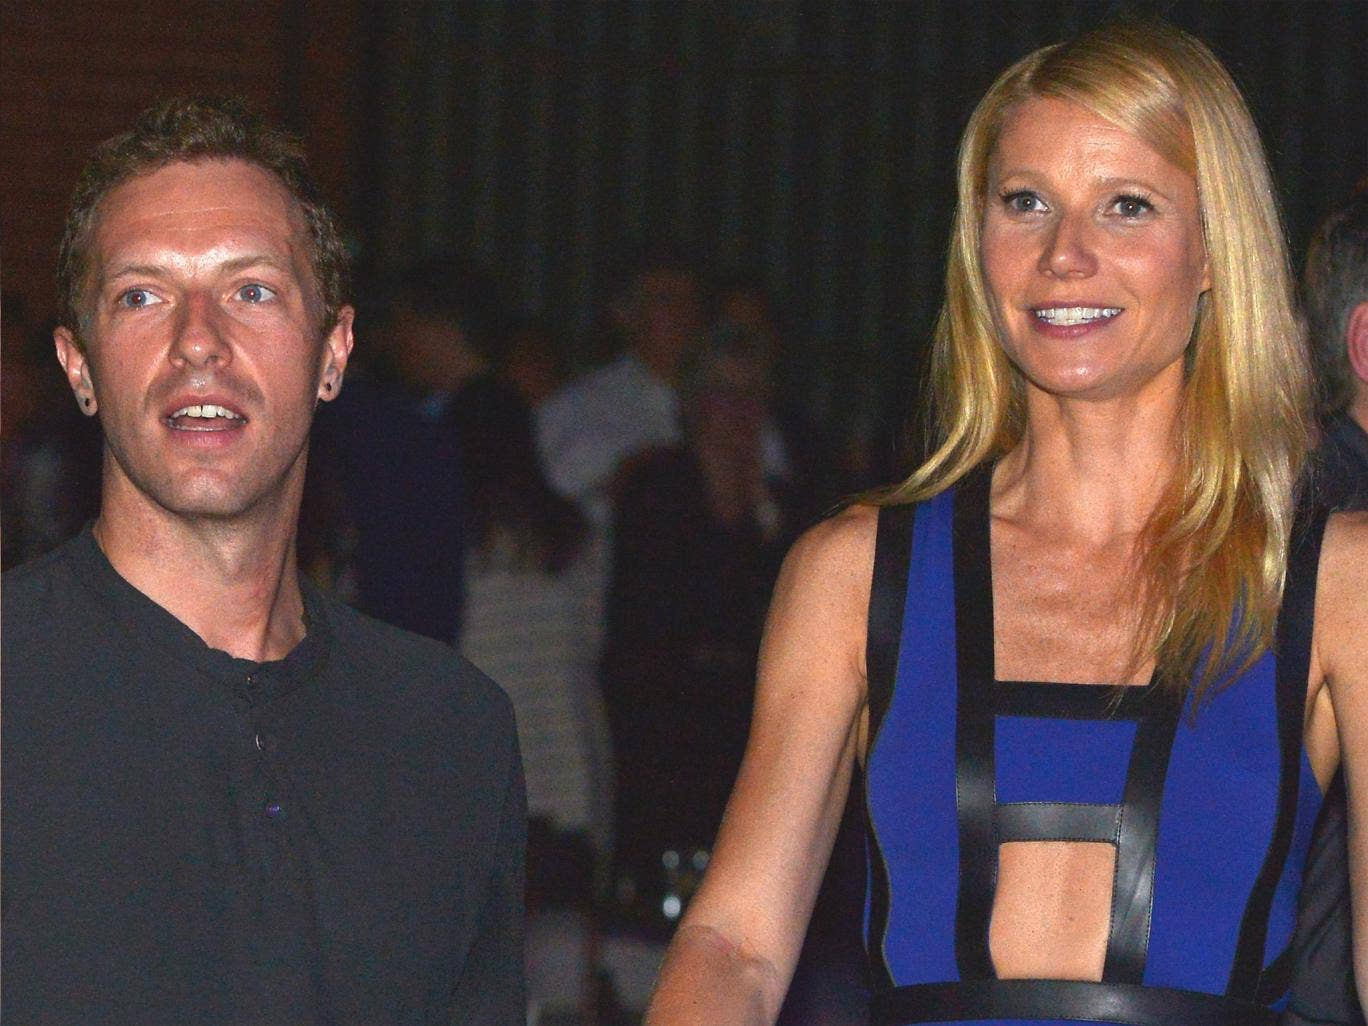 Actress Gwyneth Paltrow and Coldplay singer Chris Martin, pictured at a charity event in January